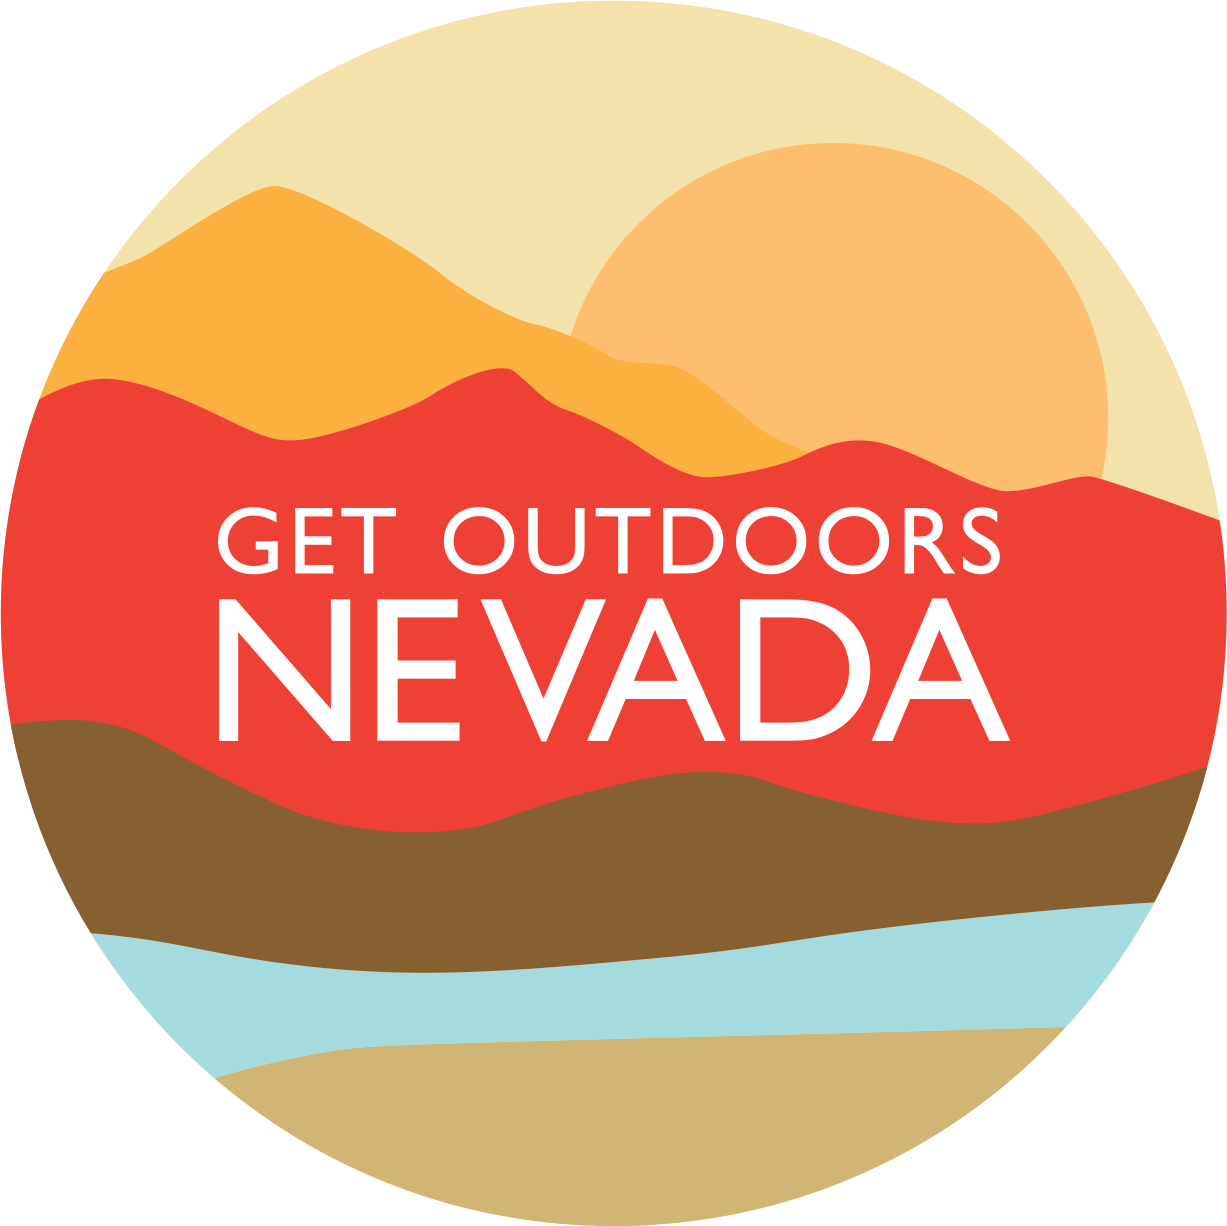 Las vegas clipart doodle. Get outdoors nevada things